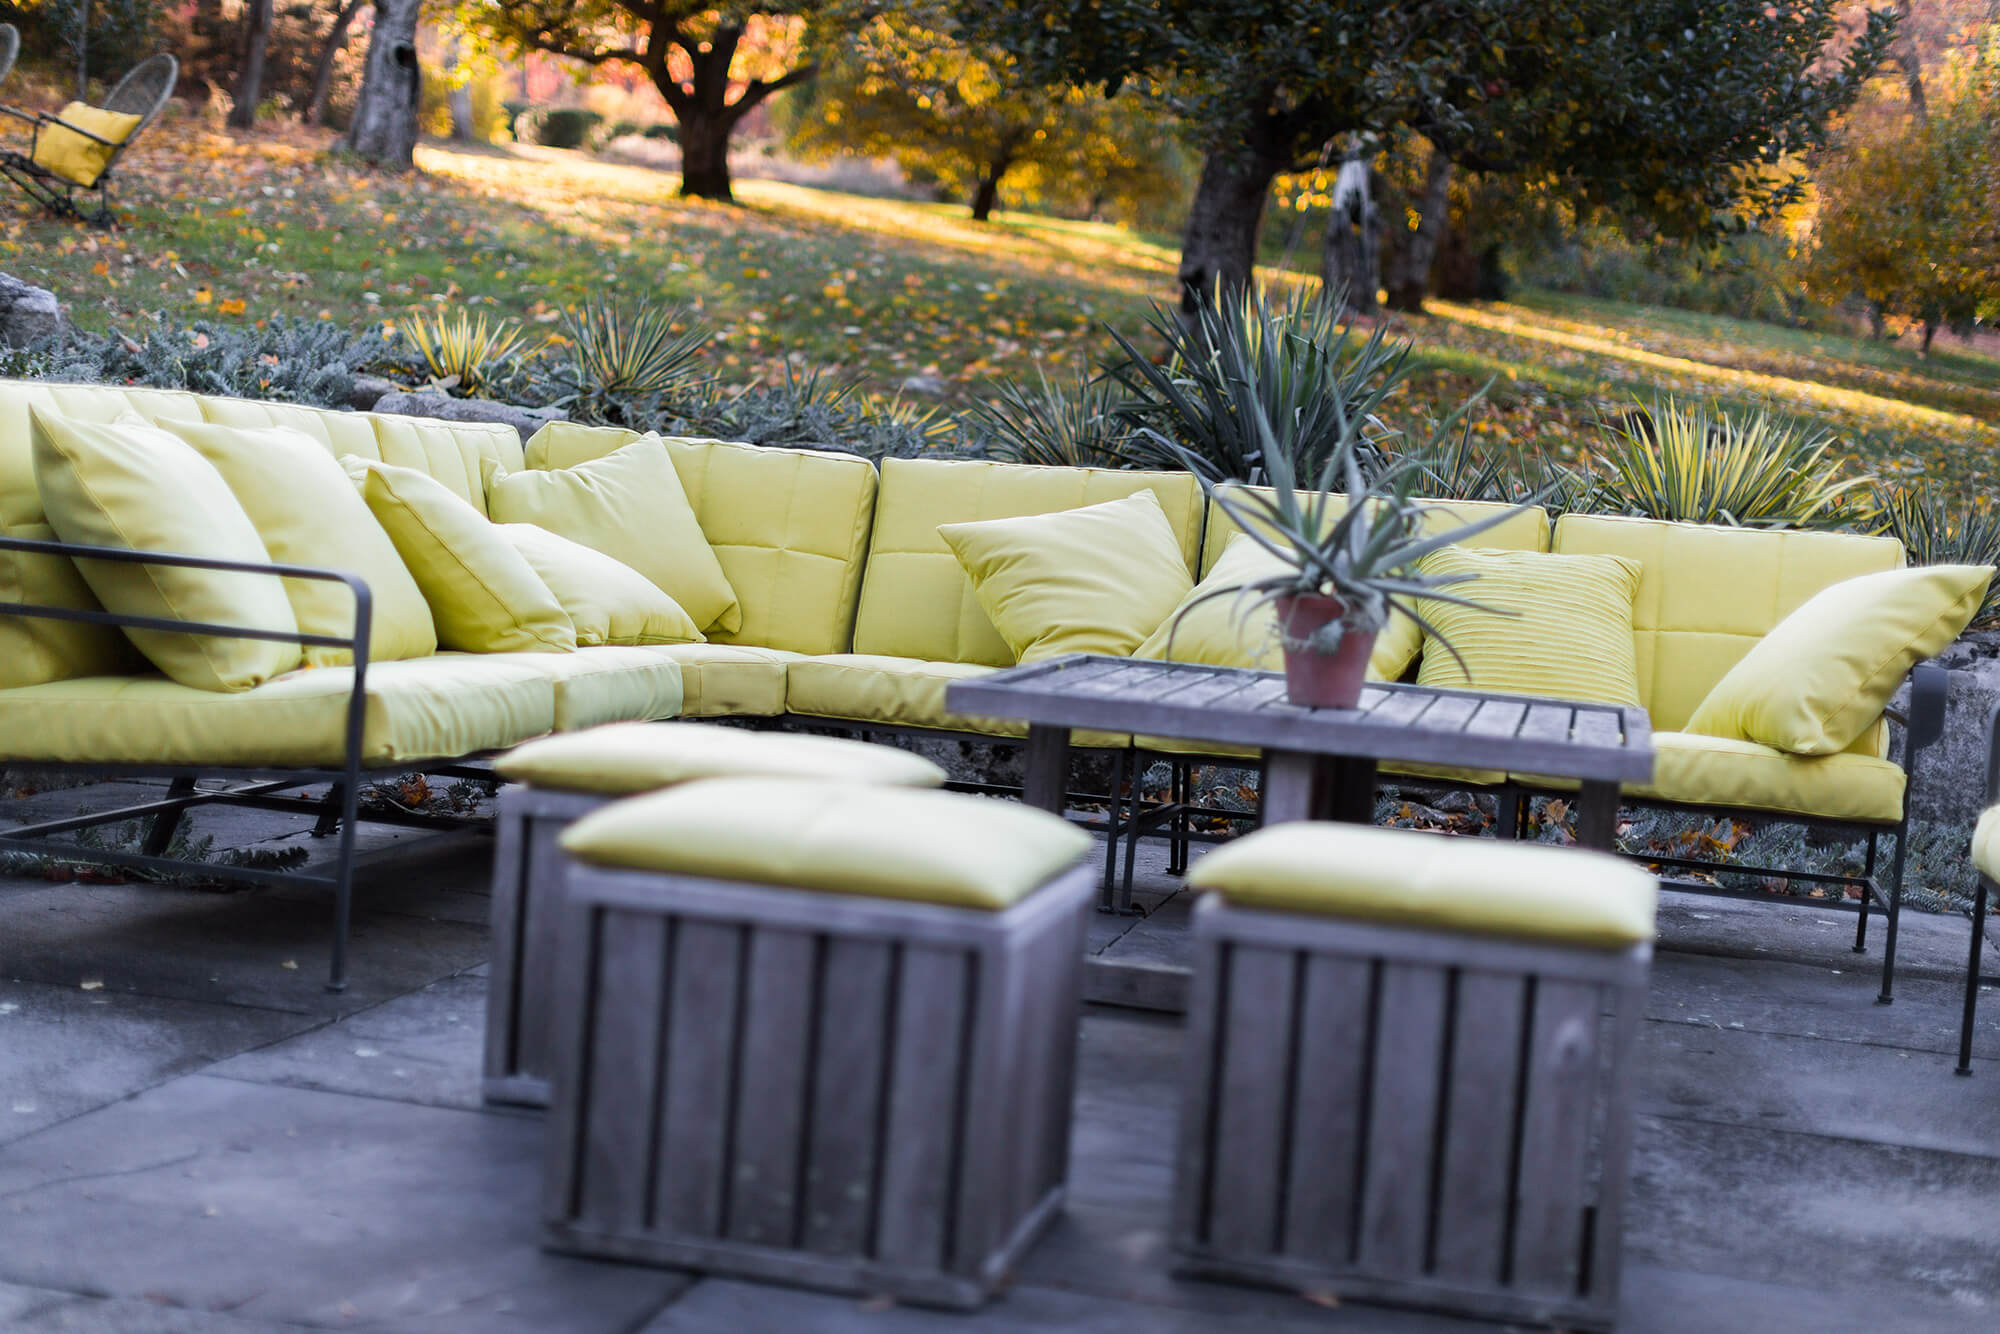 ... Sofa On Outdoor Patio Featuring Cushions With Green Sunbrella Fabric ...